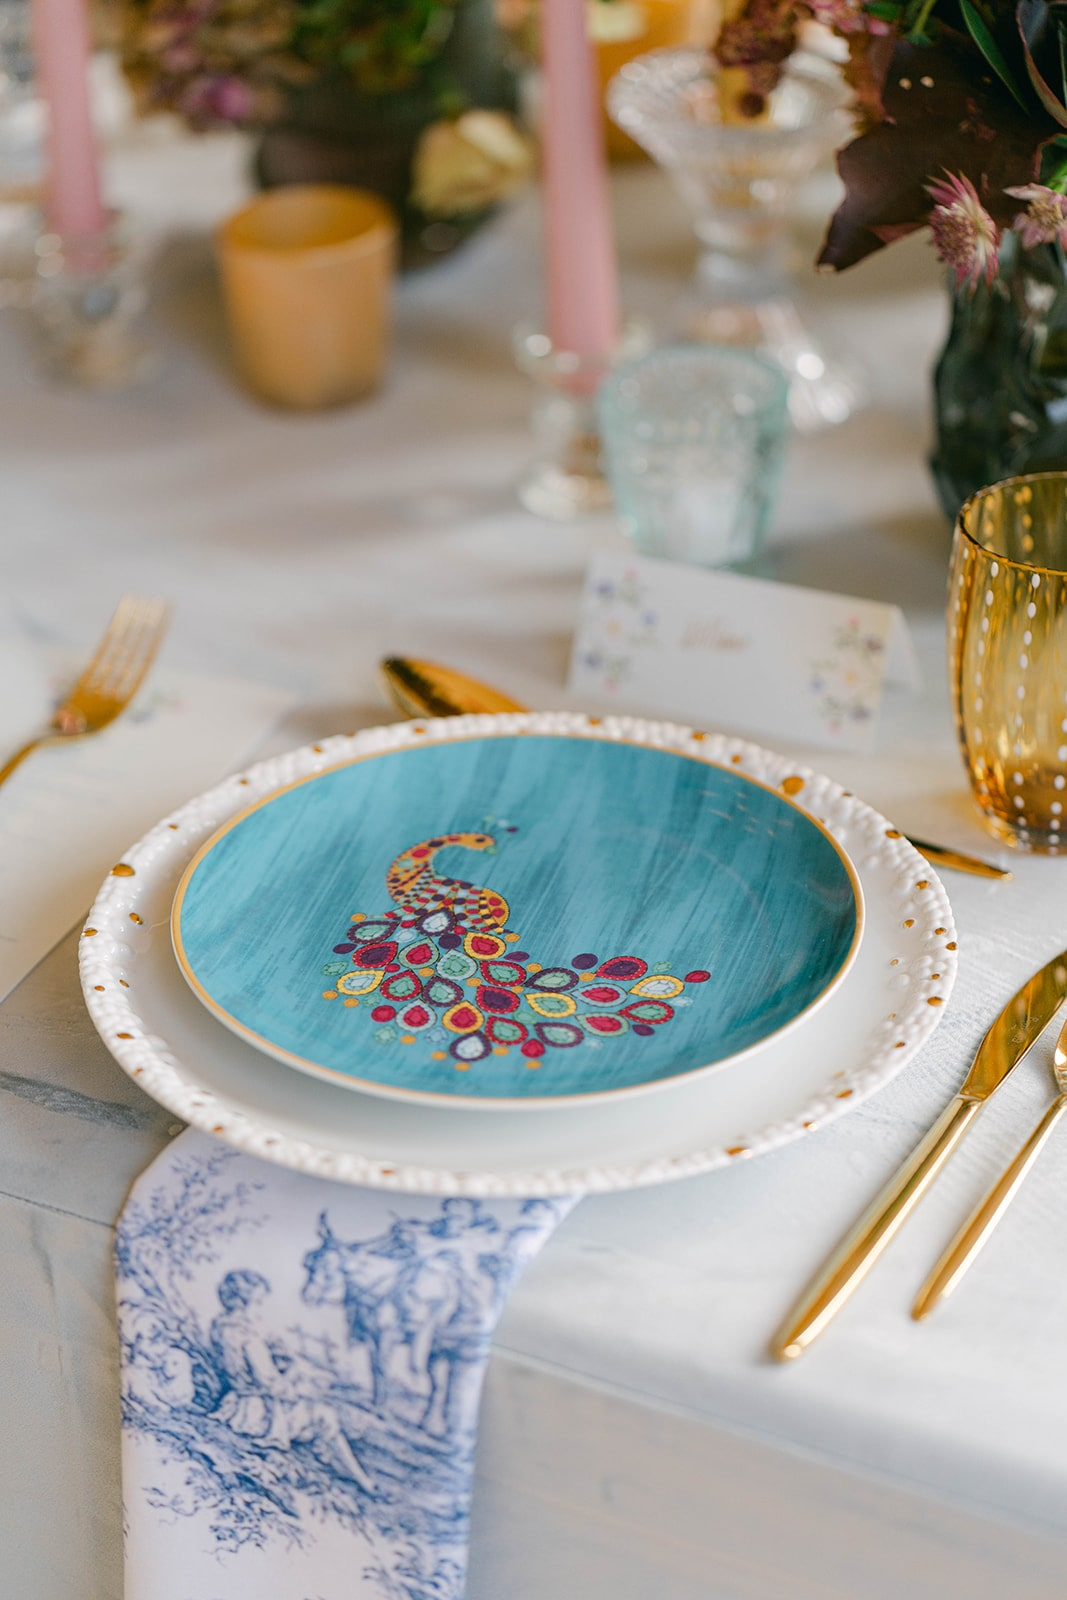 eclectic plates for table setting